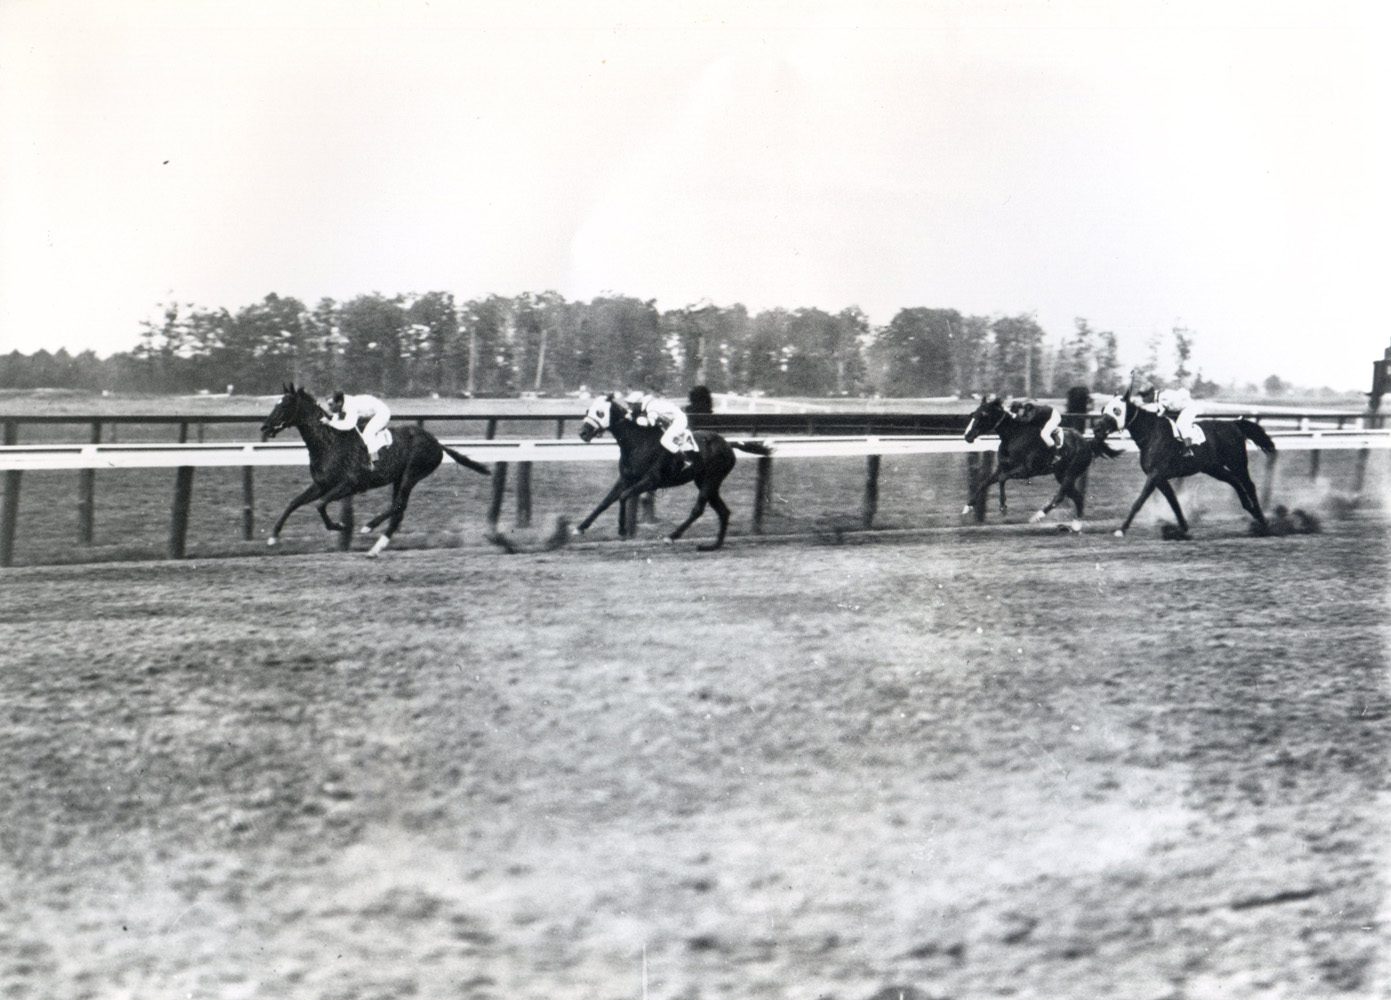 Whisk Broom II (Joe Notter up) winning the 1913 Metropolitan Handicap at Belmont, his first American race (Keeneland Library Cook Collection/Museum Collection)